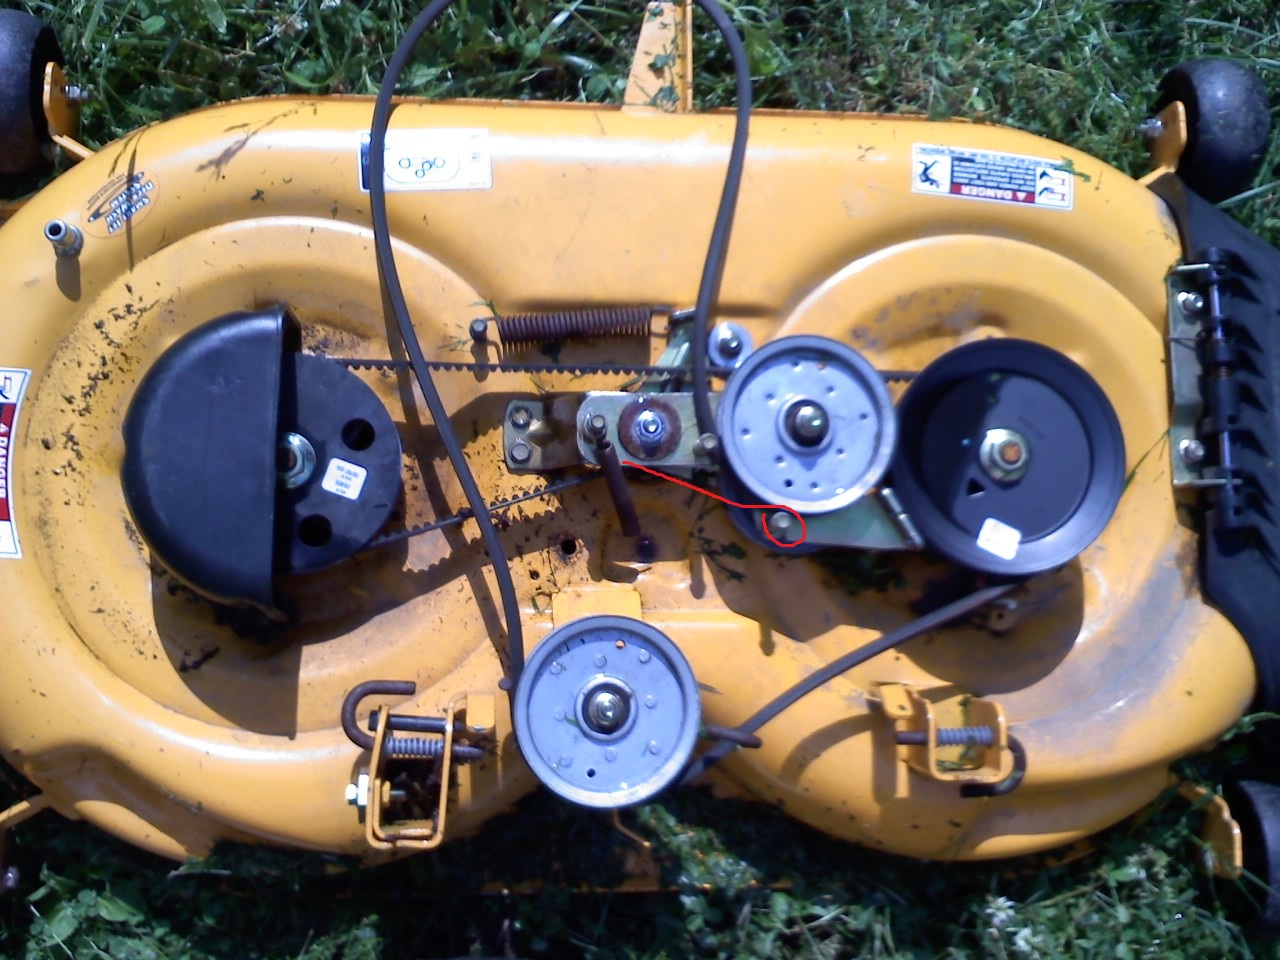 Cub Cadet Lxt 1040 With A 42 Inch Deck I Need The Diagram Manual Guide